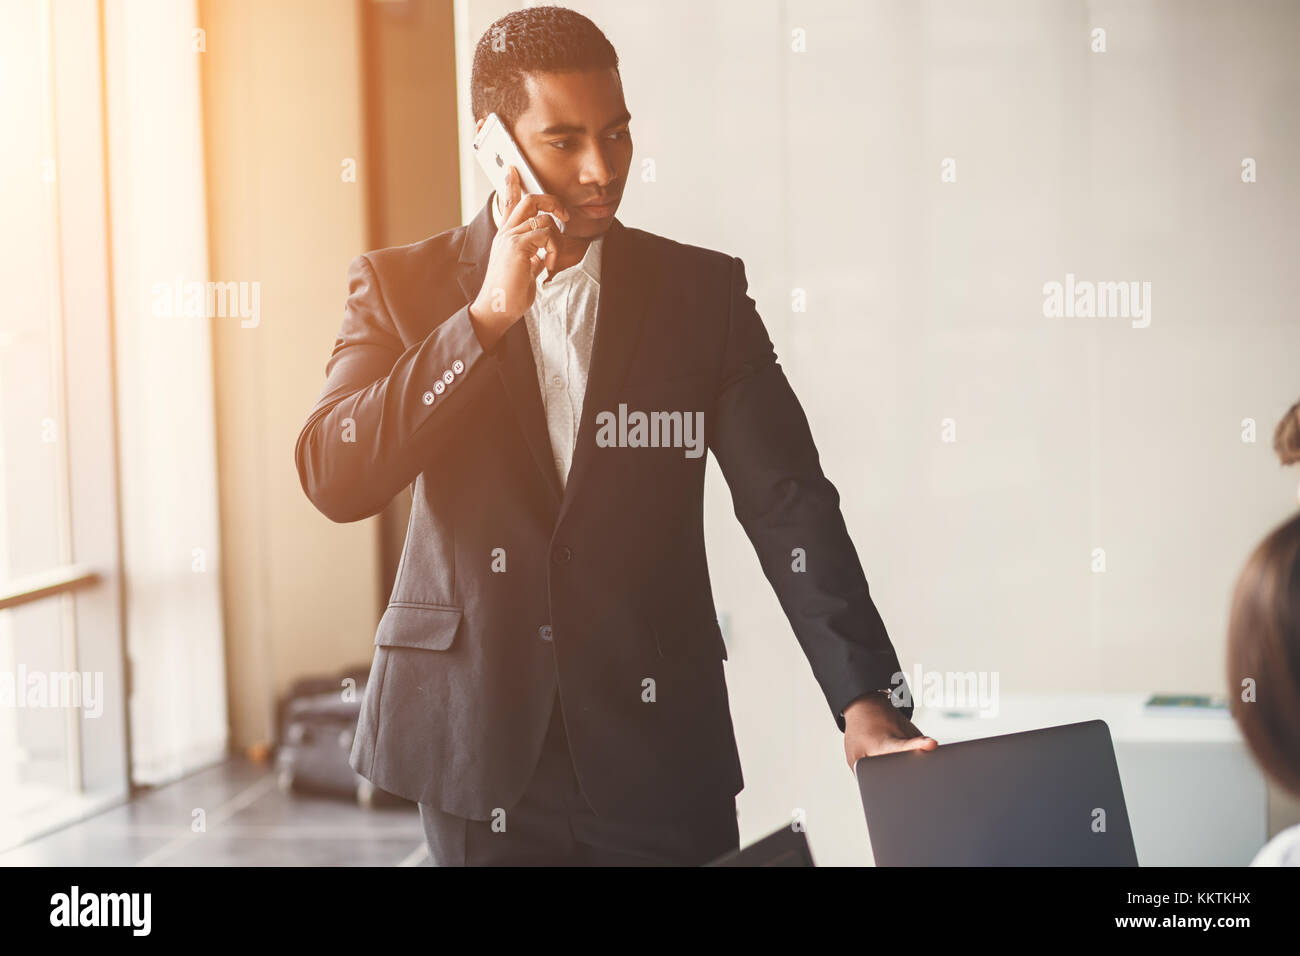 african american businessman using smart phone emailing or talking - Stock Image